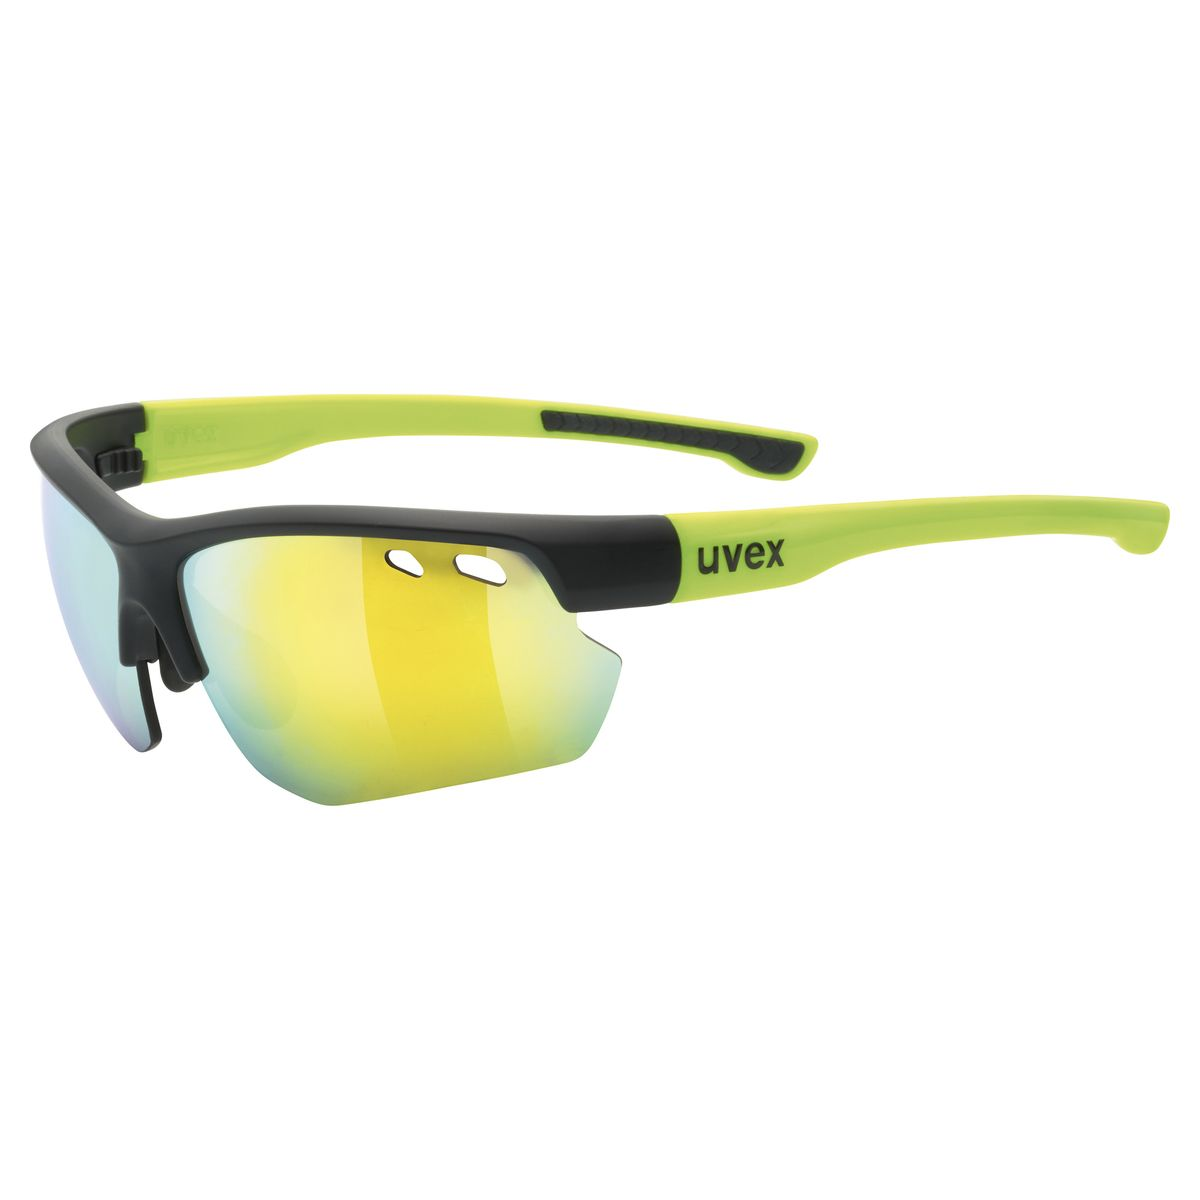 SPORTSTYLE 115 sports glasses set